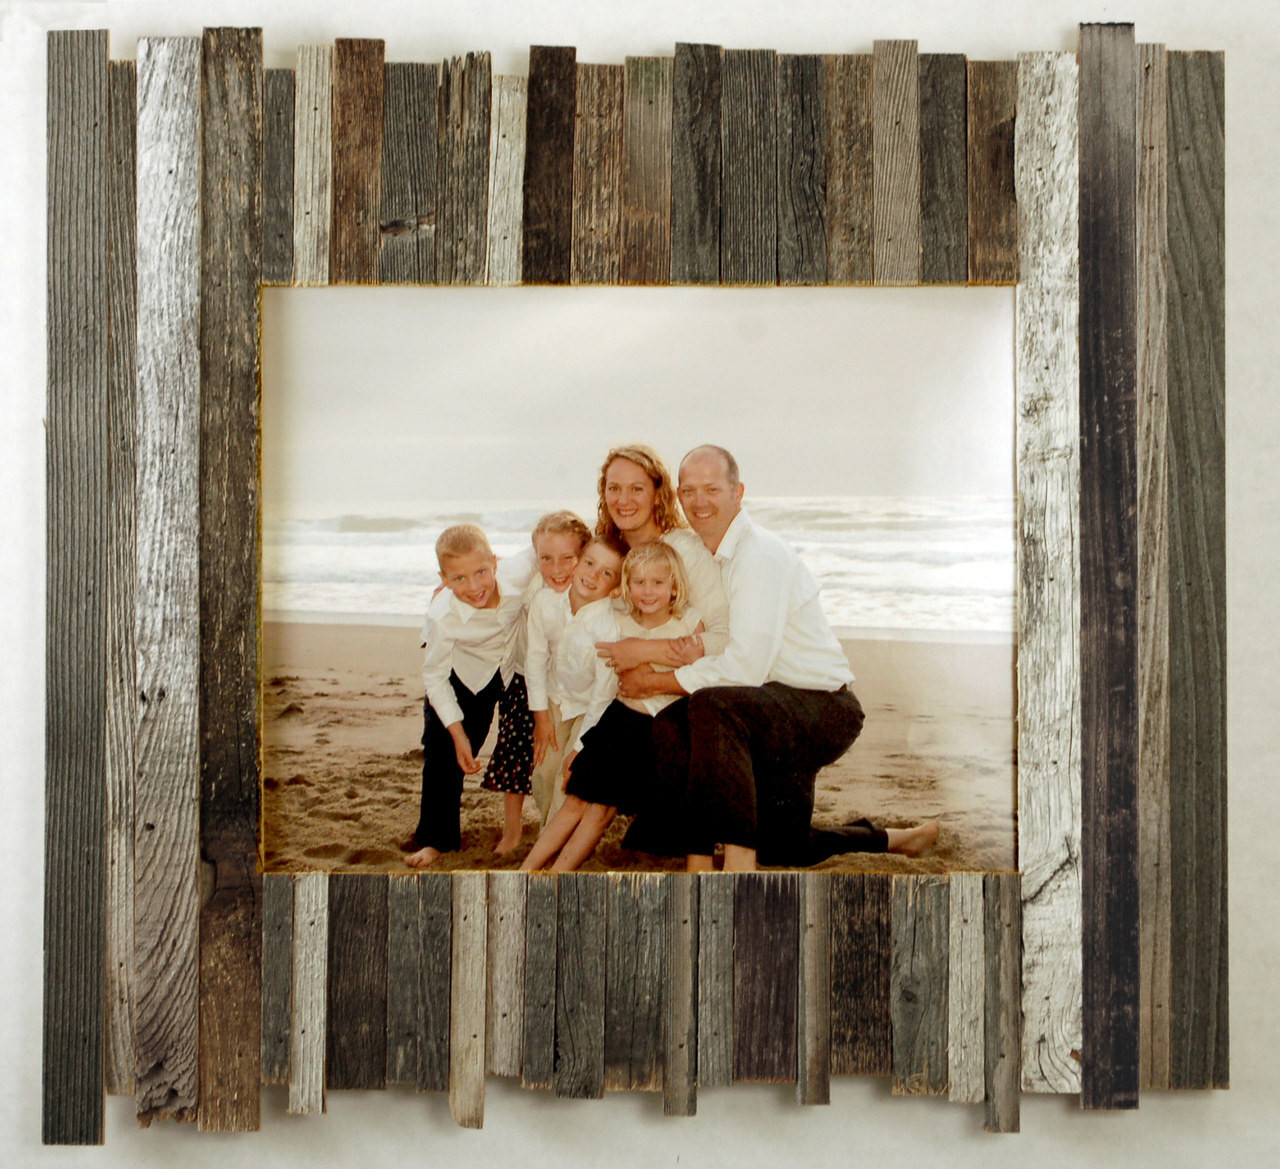 Beachcomber Reclaimed Wood Frame 8x10